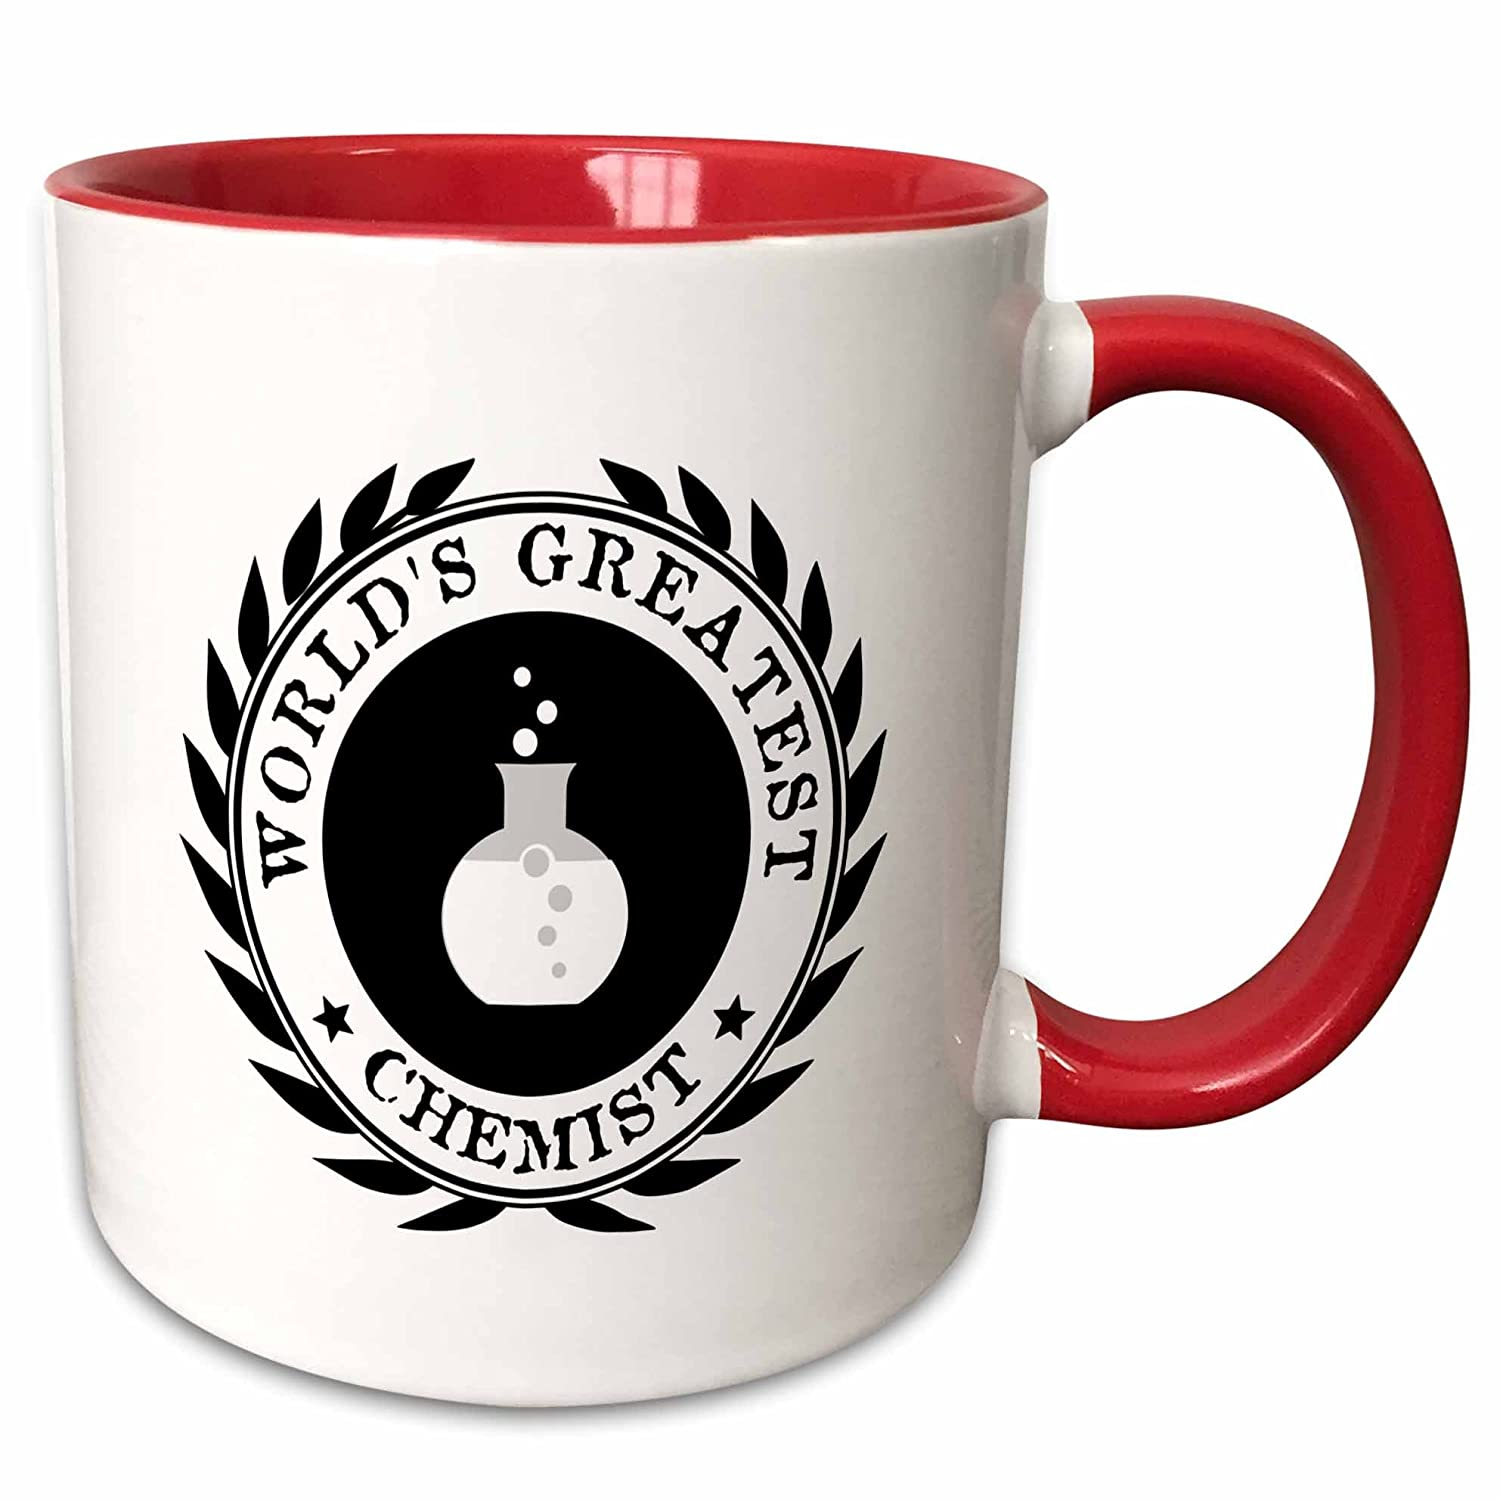 Buy 3drose Inspirationzstore Typography Worlds Greatest Chemist Chemistry Job Pride Black Badge Graphic 11oz Two Tone Red Mug Mug 164892 5 Online At Low Prices In India Amazon In